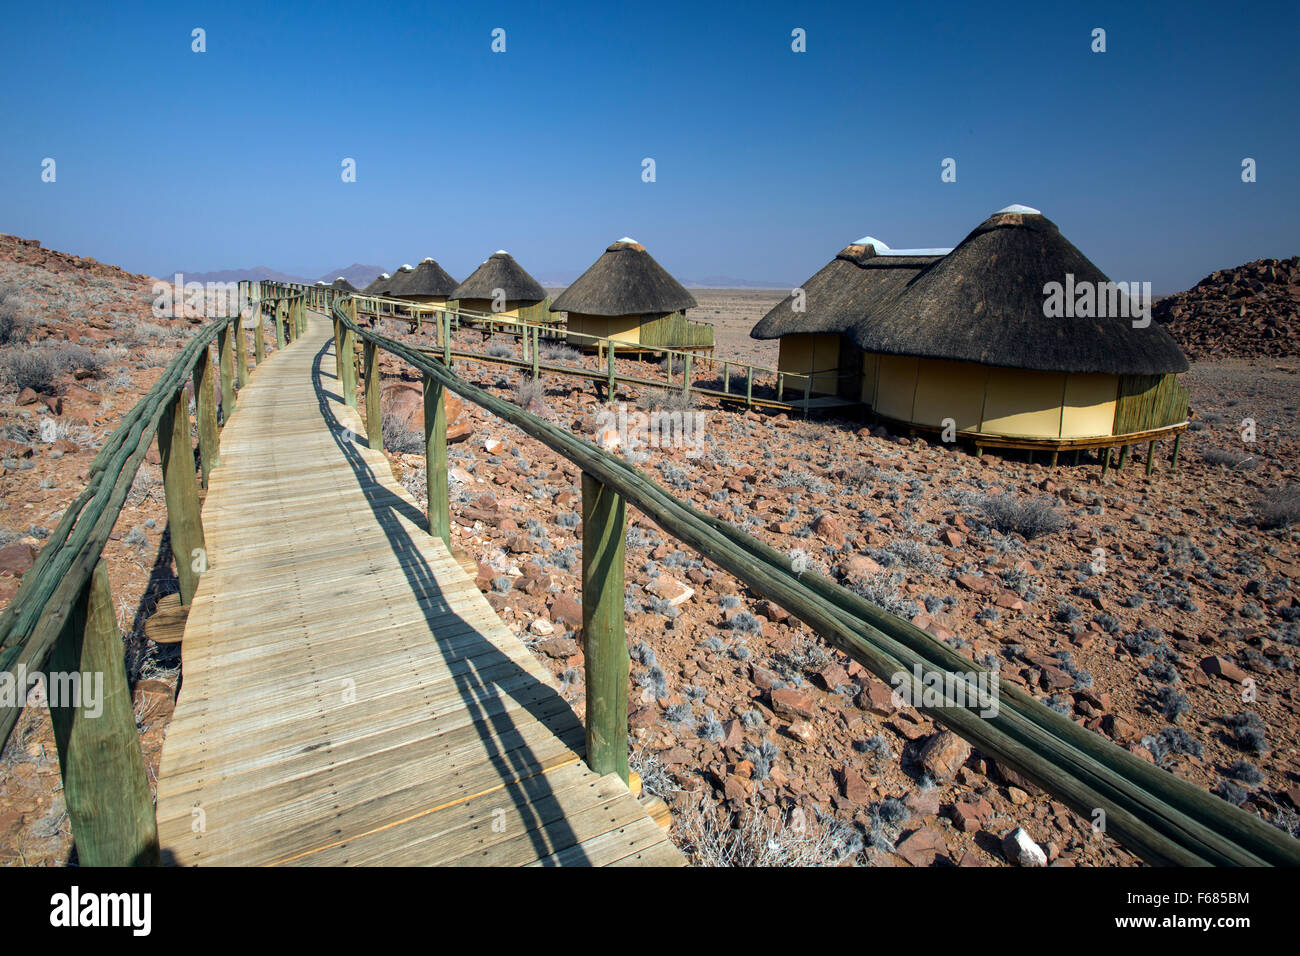 Sossus Dune Lodge thatch huts in Sossusvlei, Namibia, Africa - Stock Image